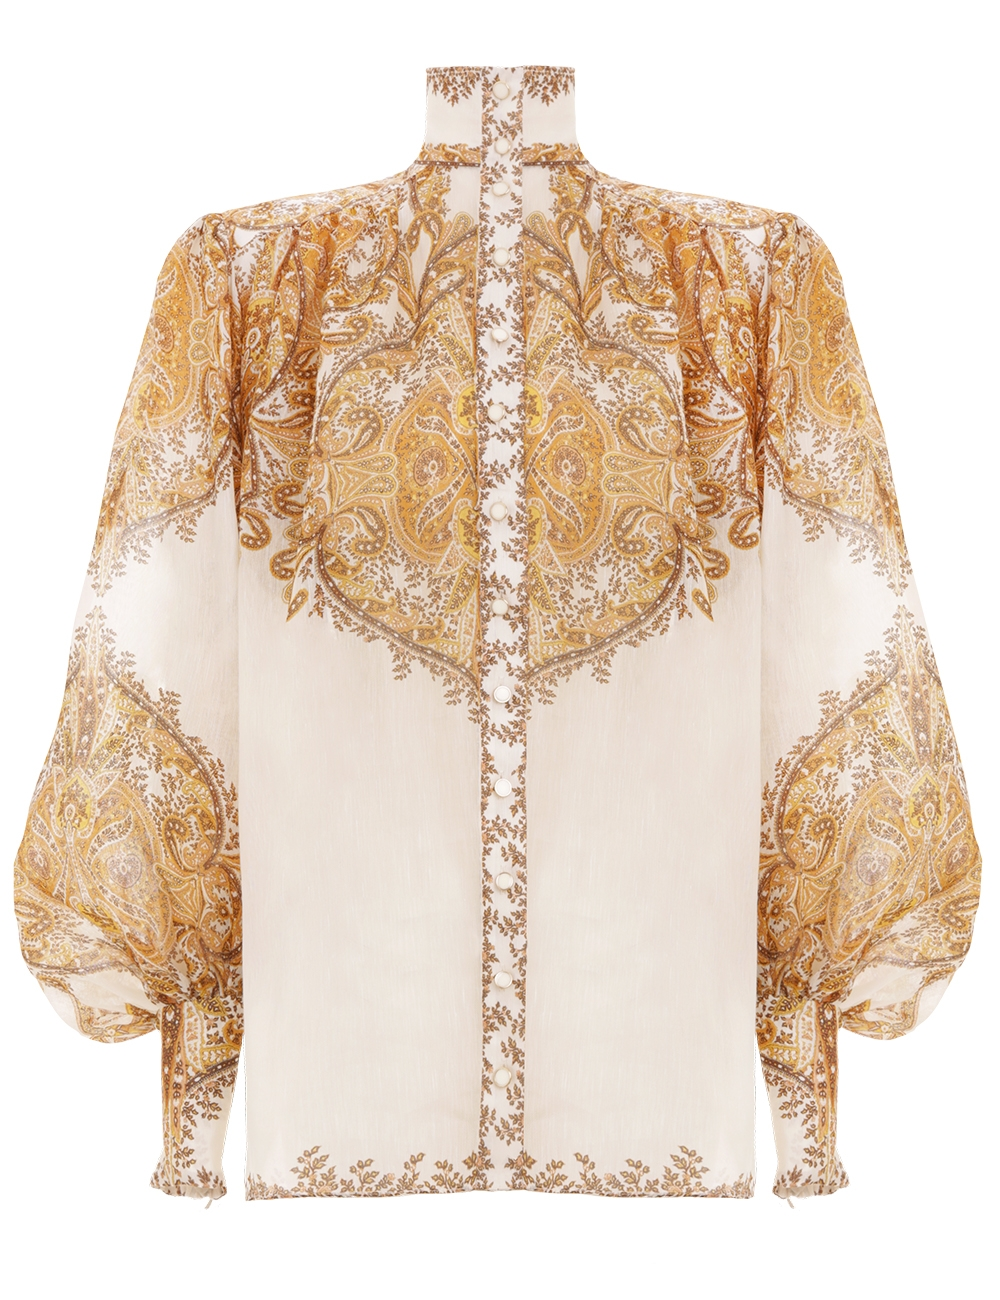 Zippy Billow Blouse